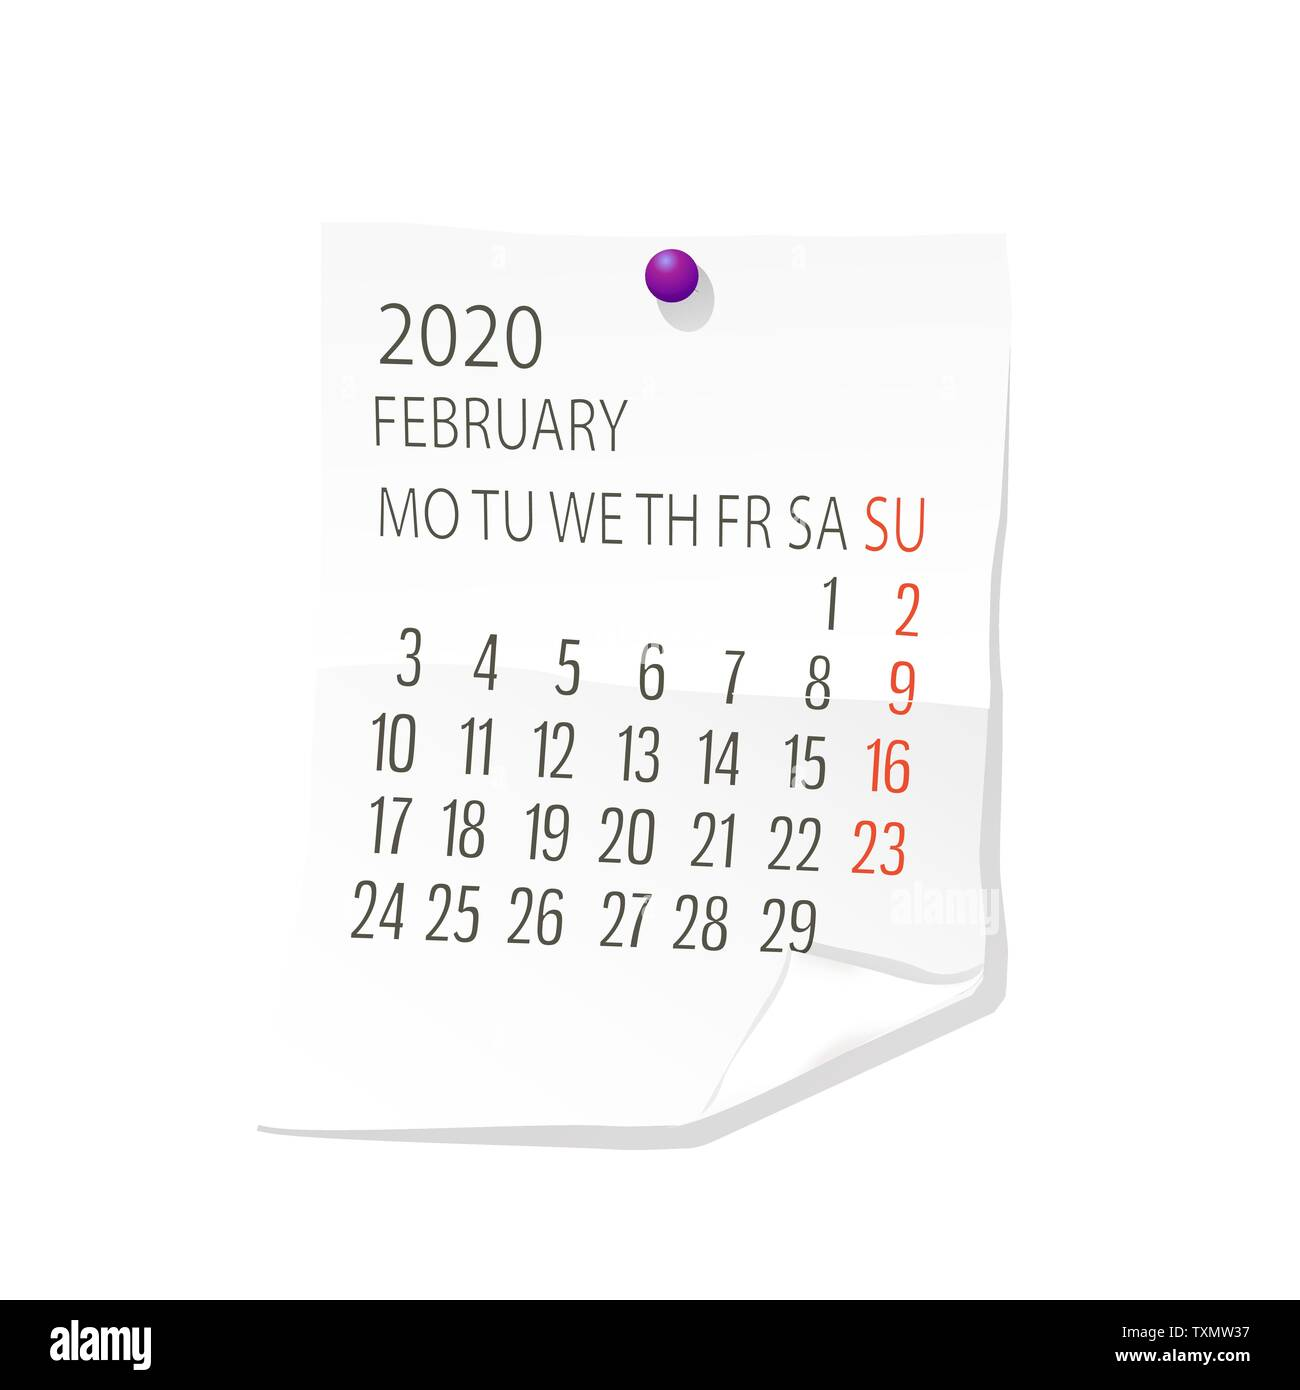 February Calendar Background 2020 Vector calendar for February 2020 on white paper with holding pin